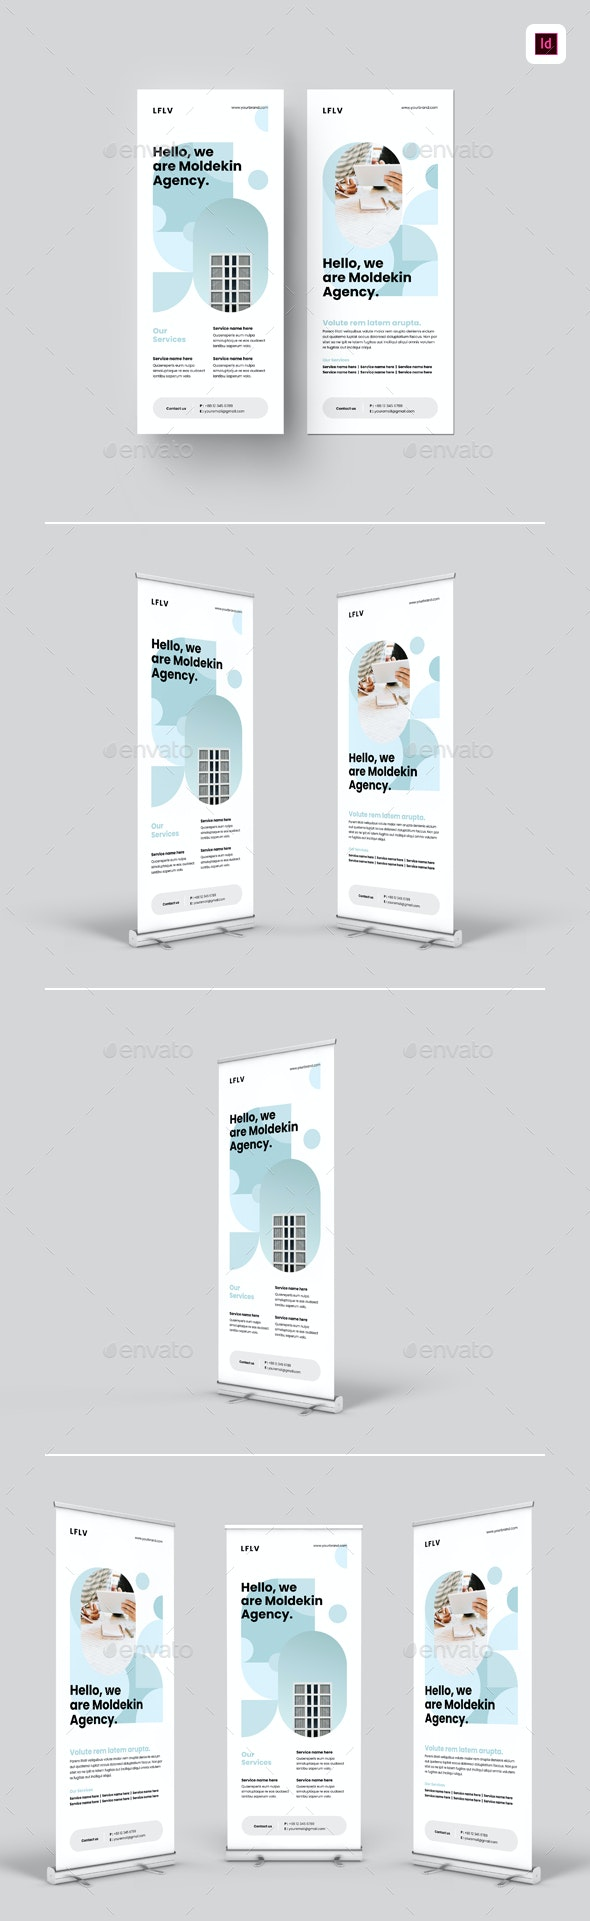 Business Roll-up Banners - Signage Print Templates